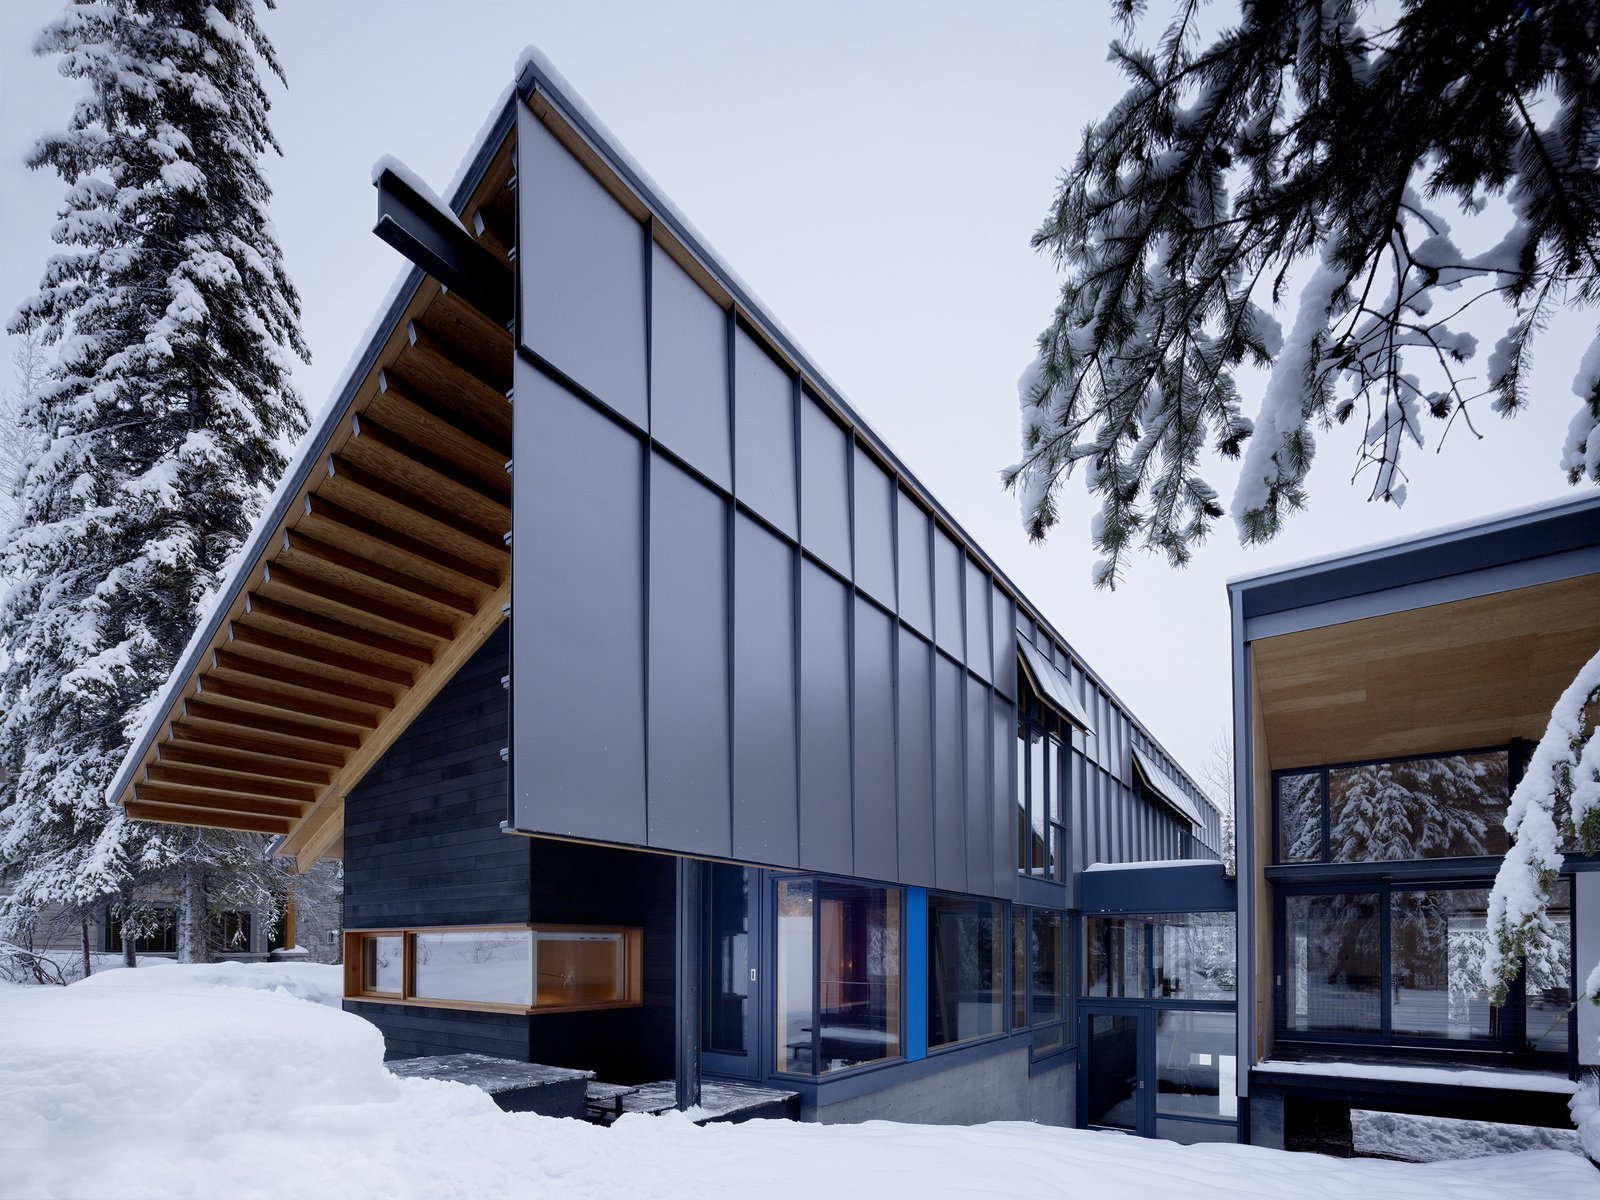 Tagged: Outdoor.  Kicking Horse Residence by Bohlin Cywinski Jackson